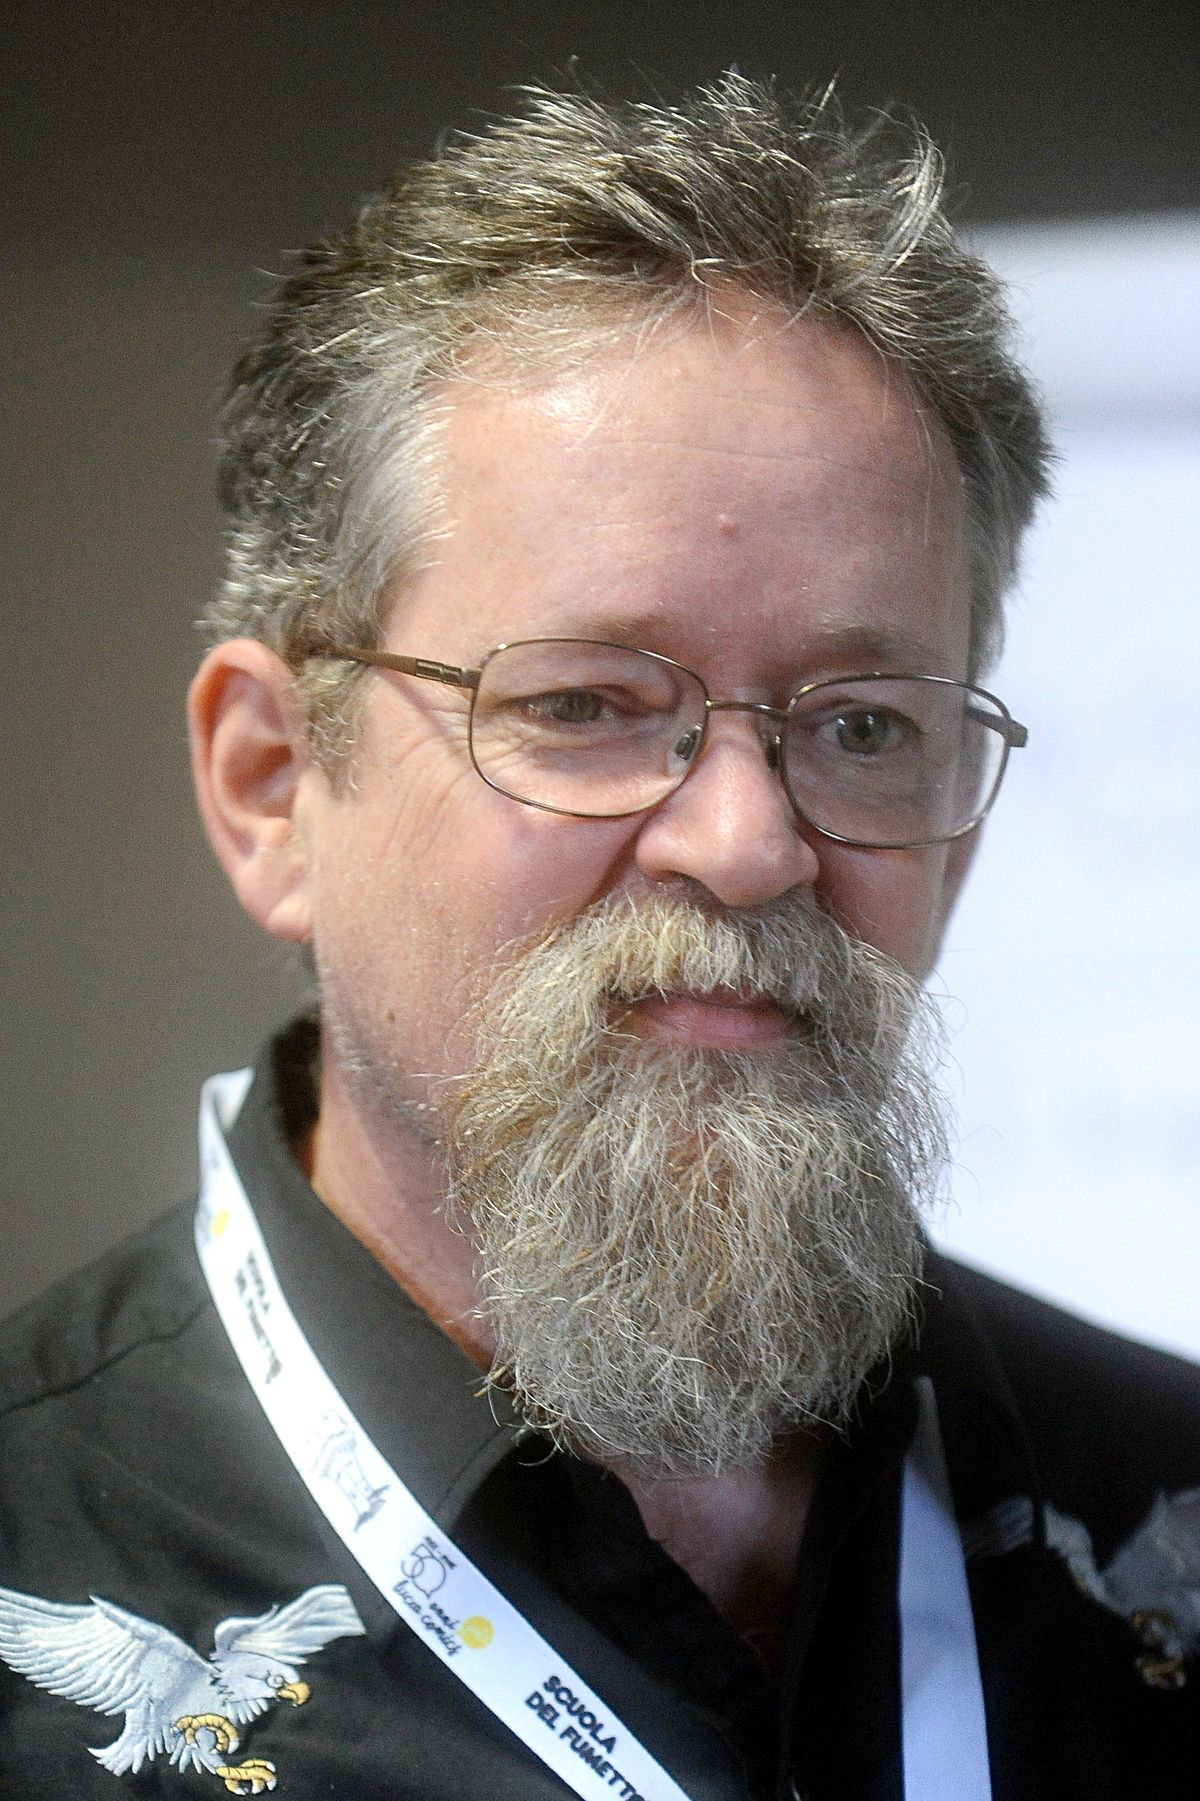 a59e4f03c4a04 David Cook (game designer) - Wikipedia